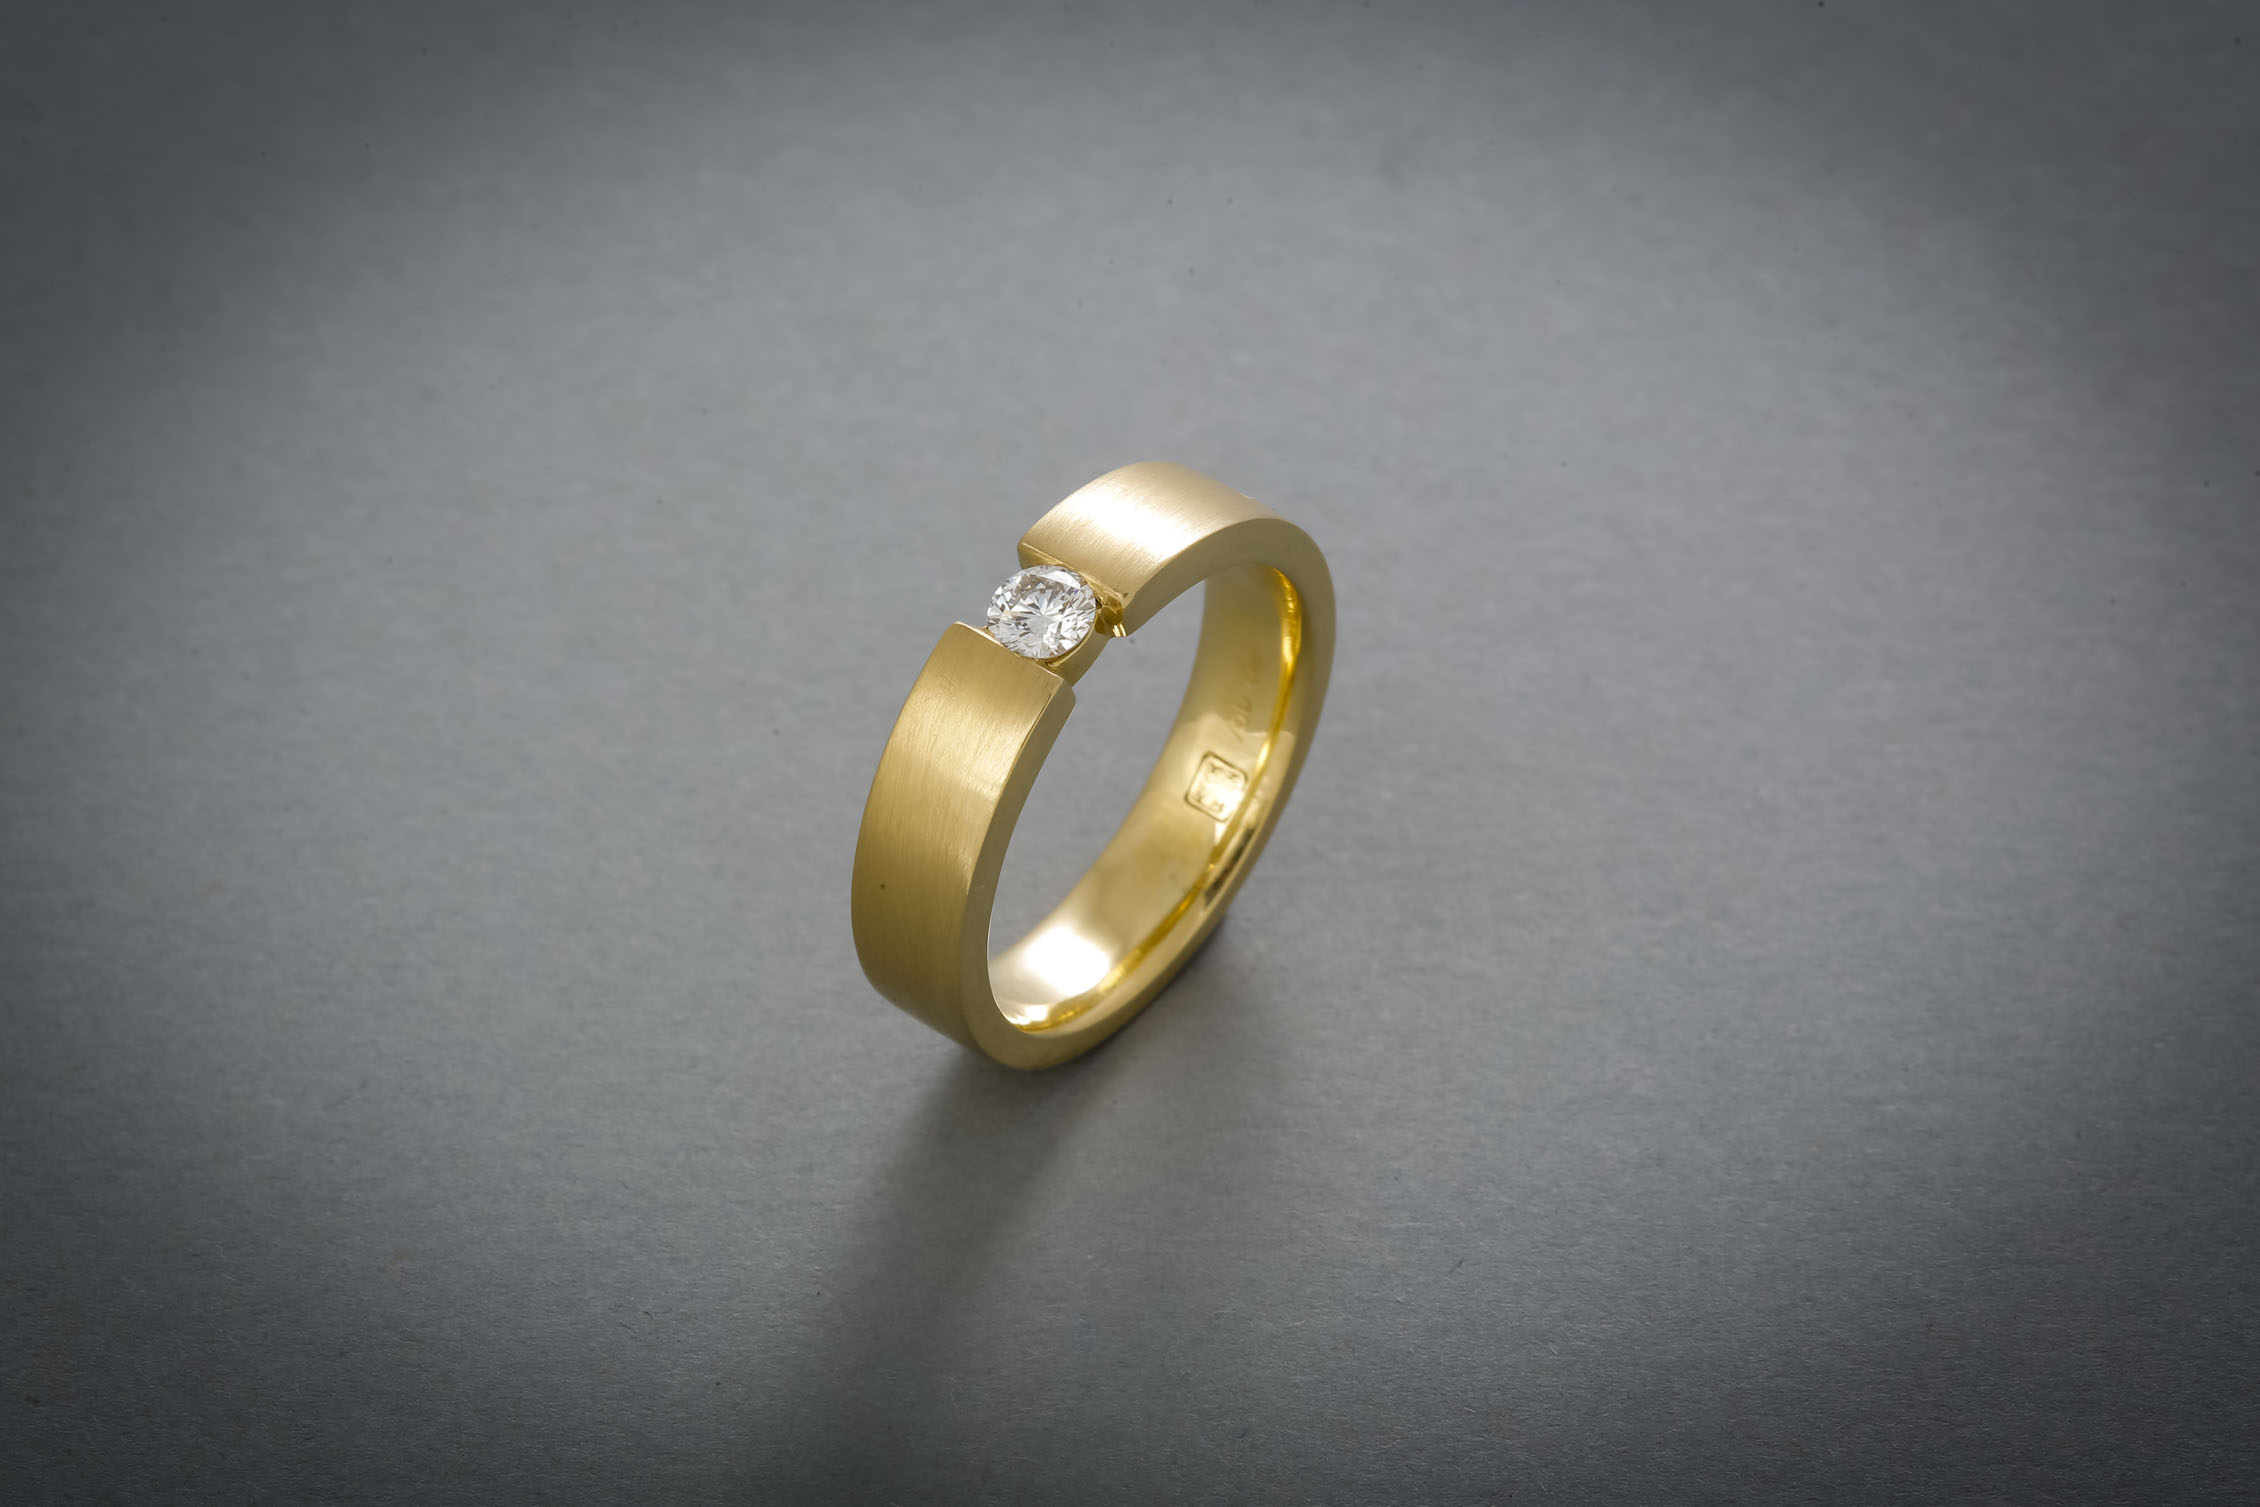 099 Spannring, Gold, Brillant 0,20ct € 1628,-